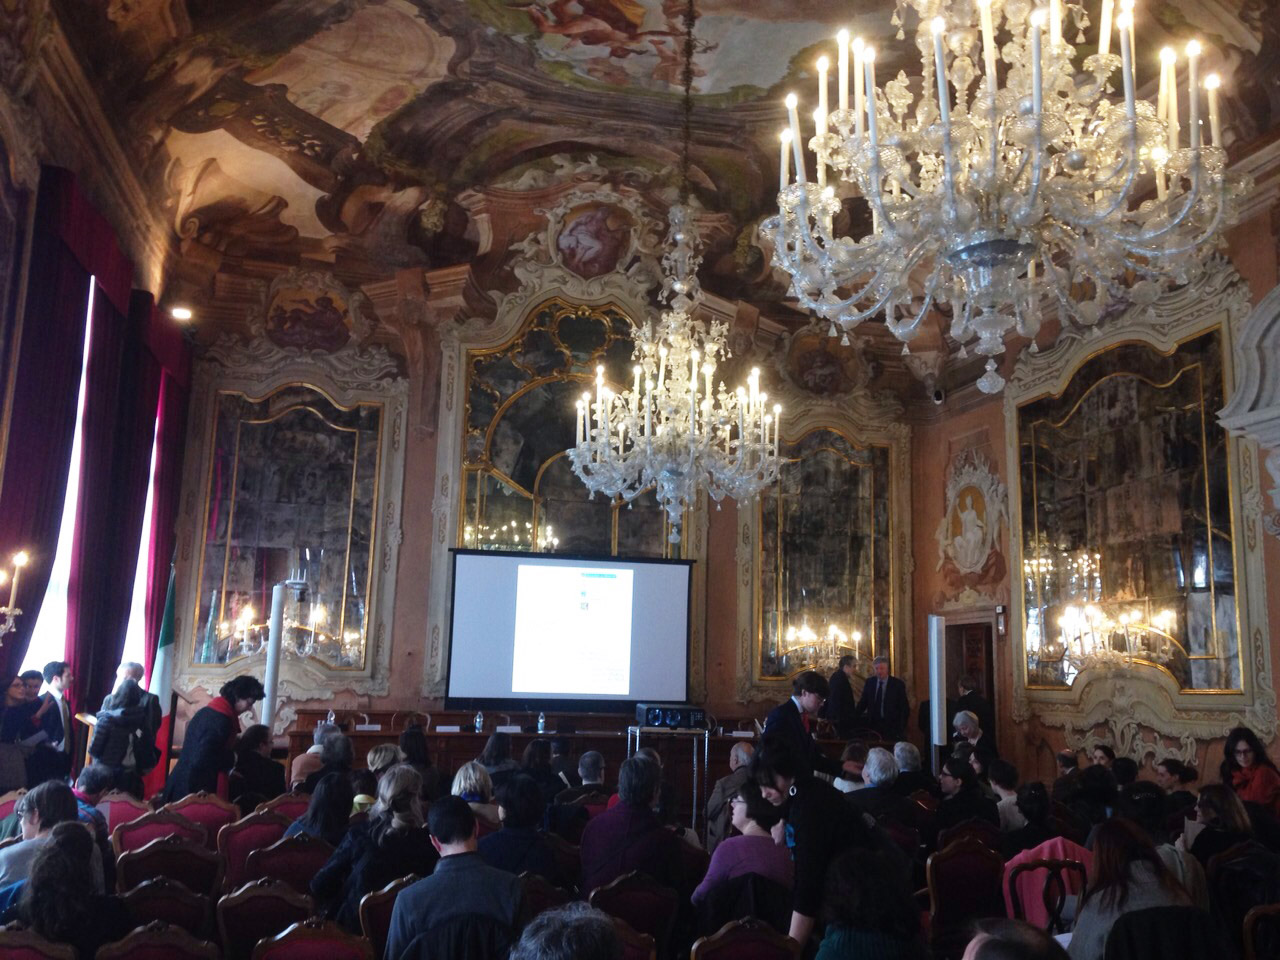 To comply with Venice's historical restoration requirements, the walls of the 16th century auditorium could not be altered or marred during AV system integration.